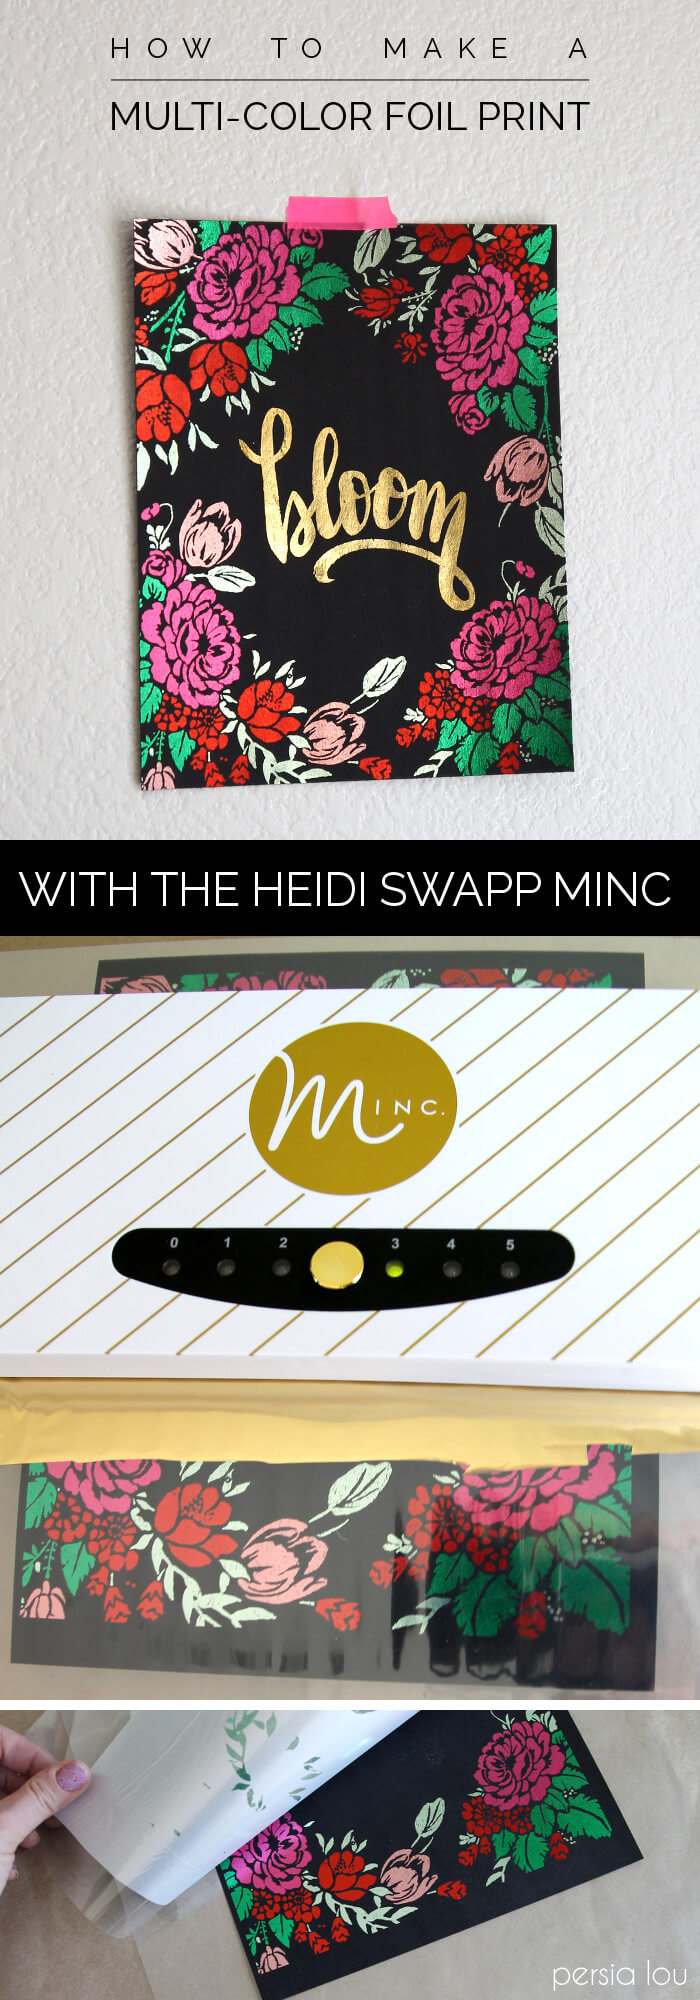 Wow! Make multi-colored metallic foil prints with the Heidi Swapp Minc. Complete instructions plus free download.